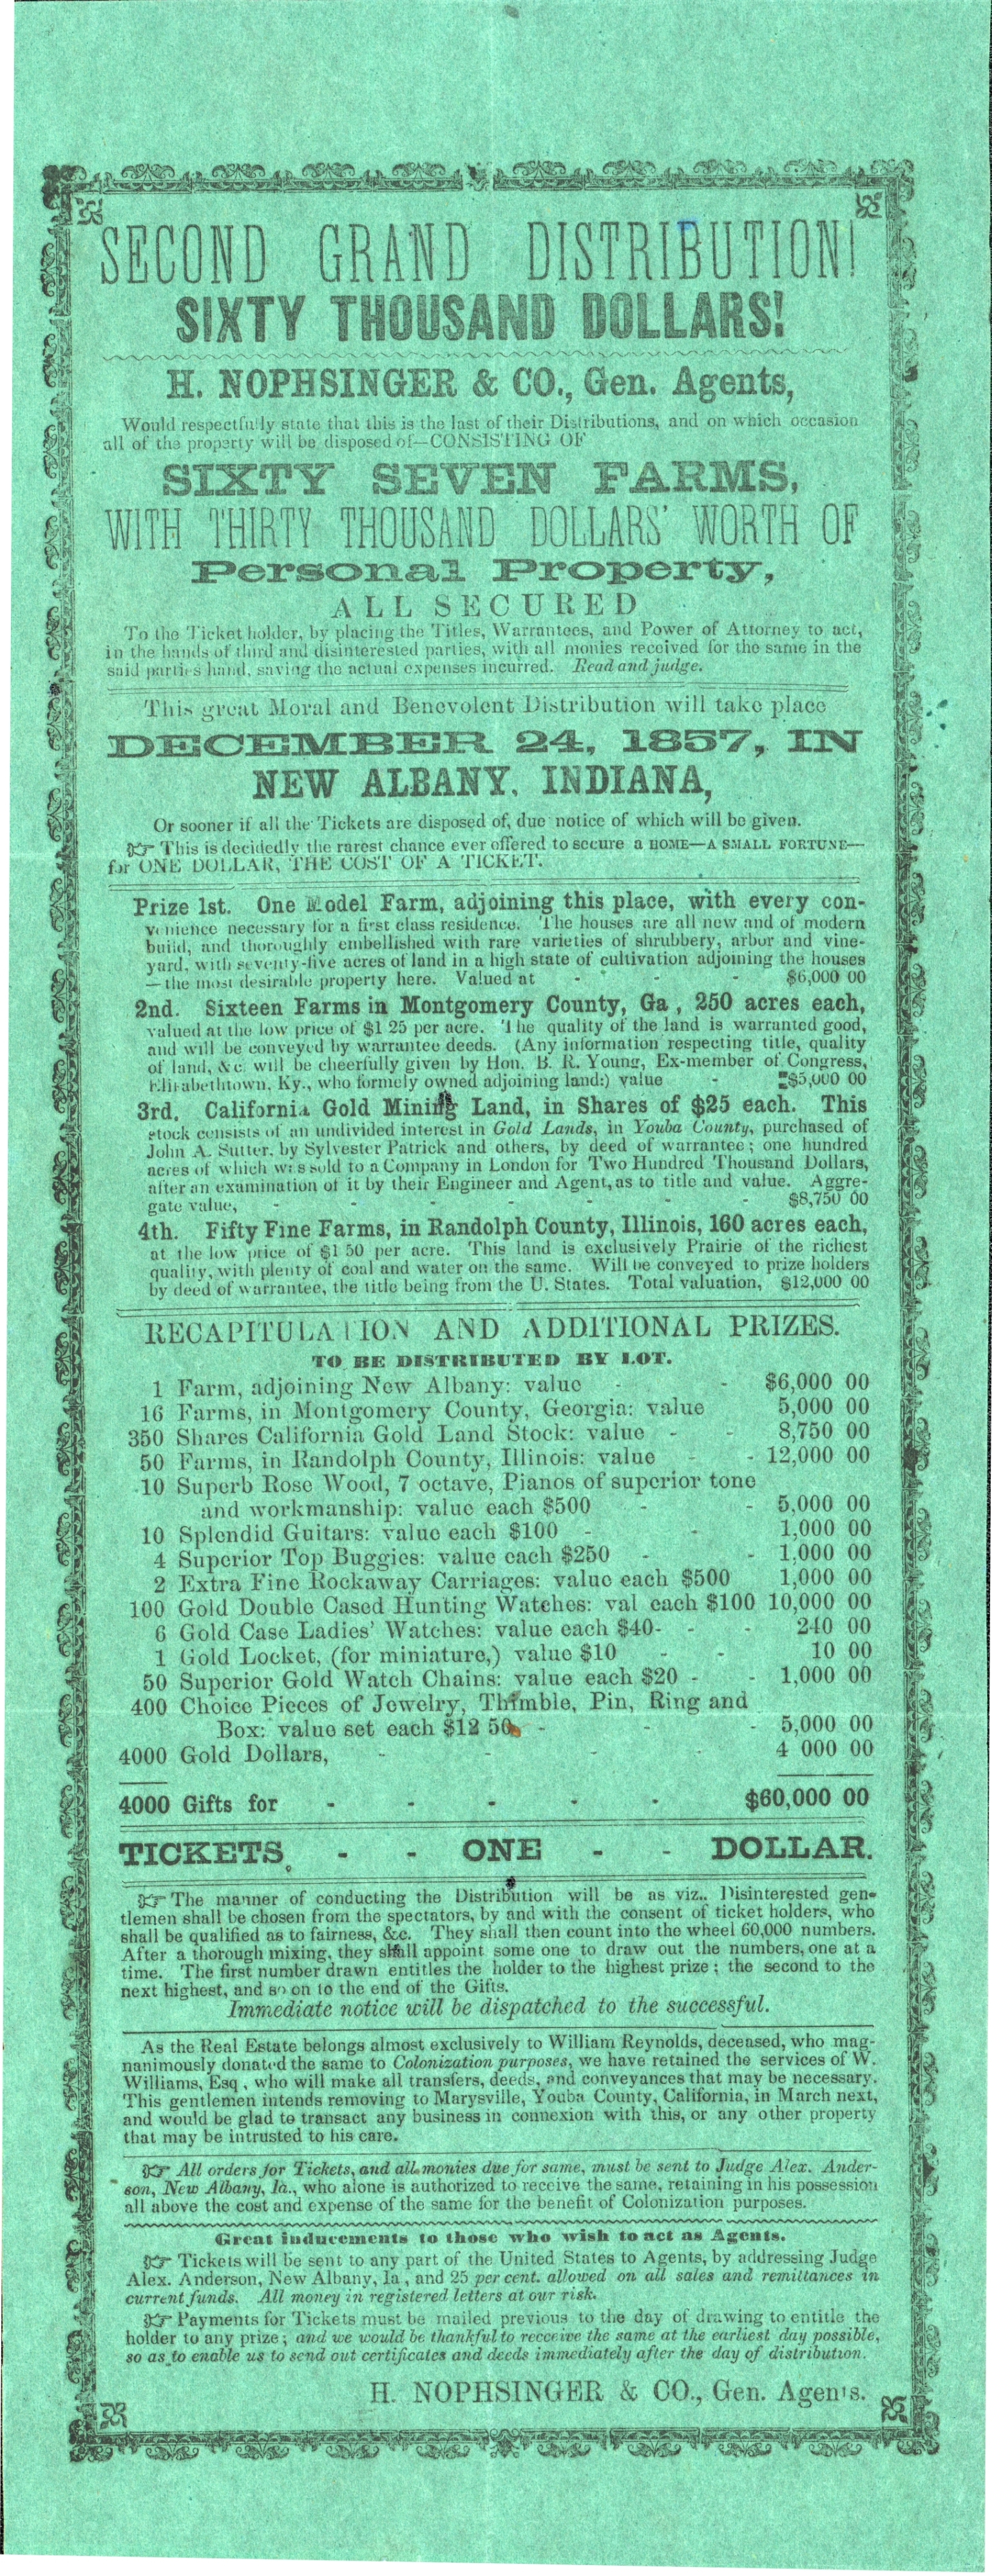 H. Nophsinger & Co., (General Agents) papers.